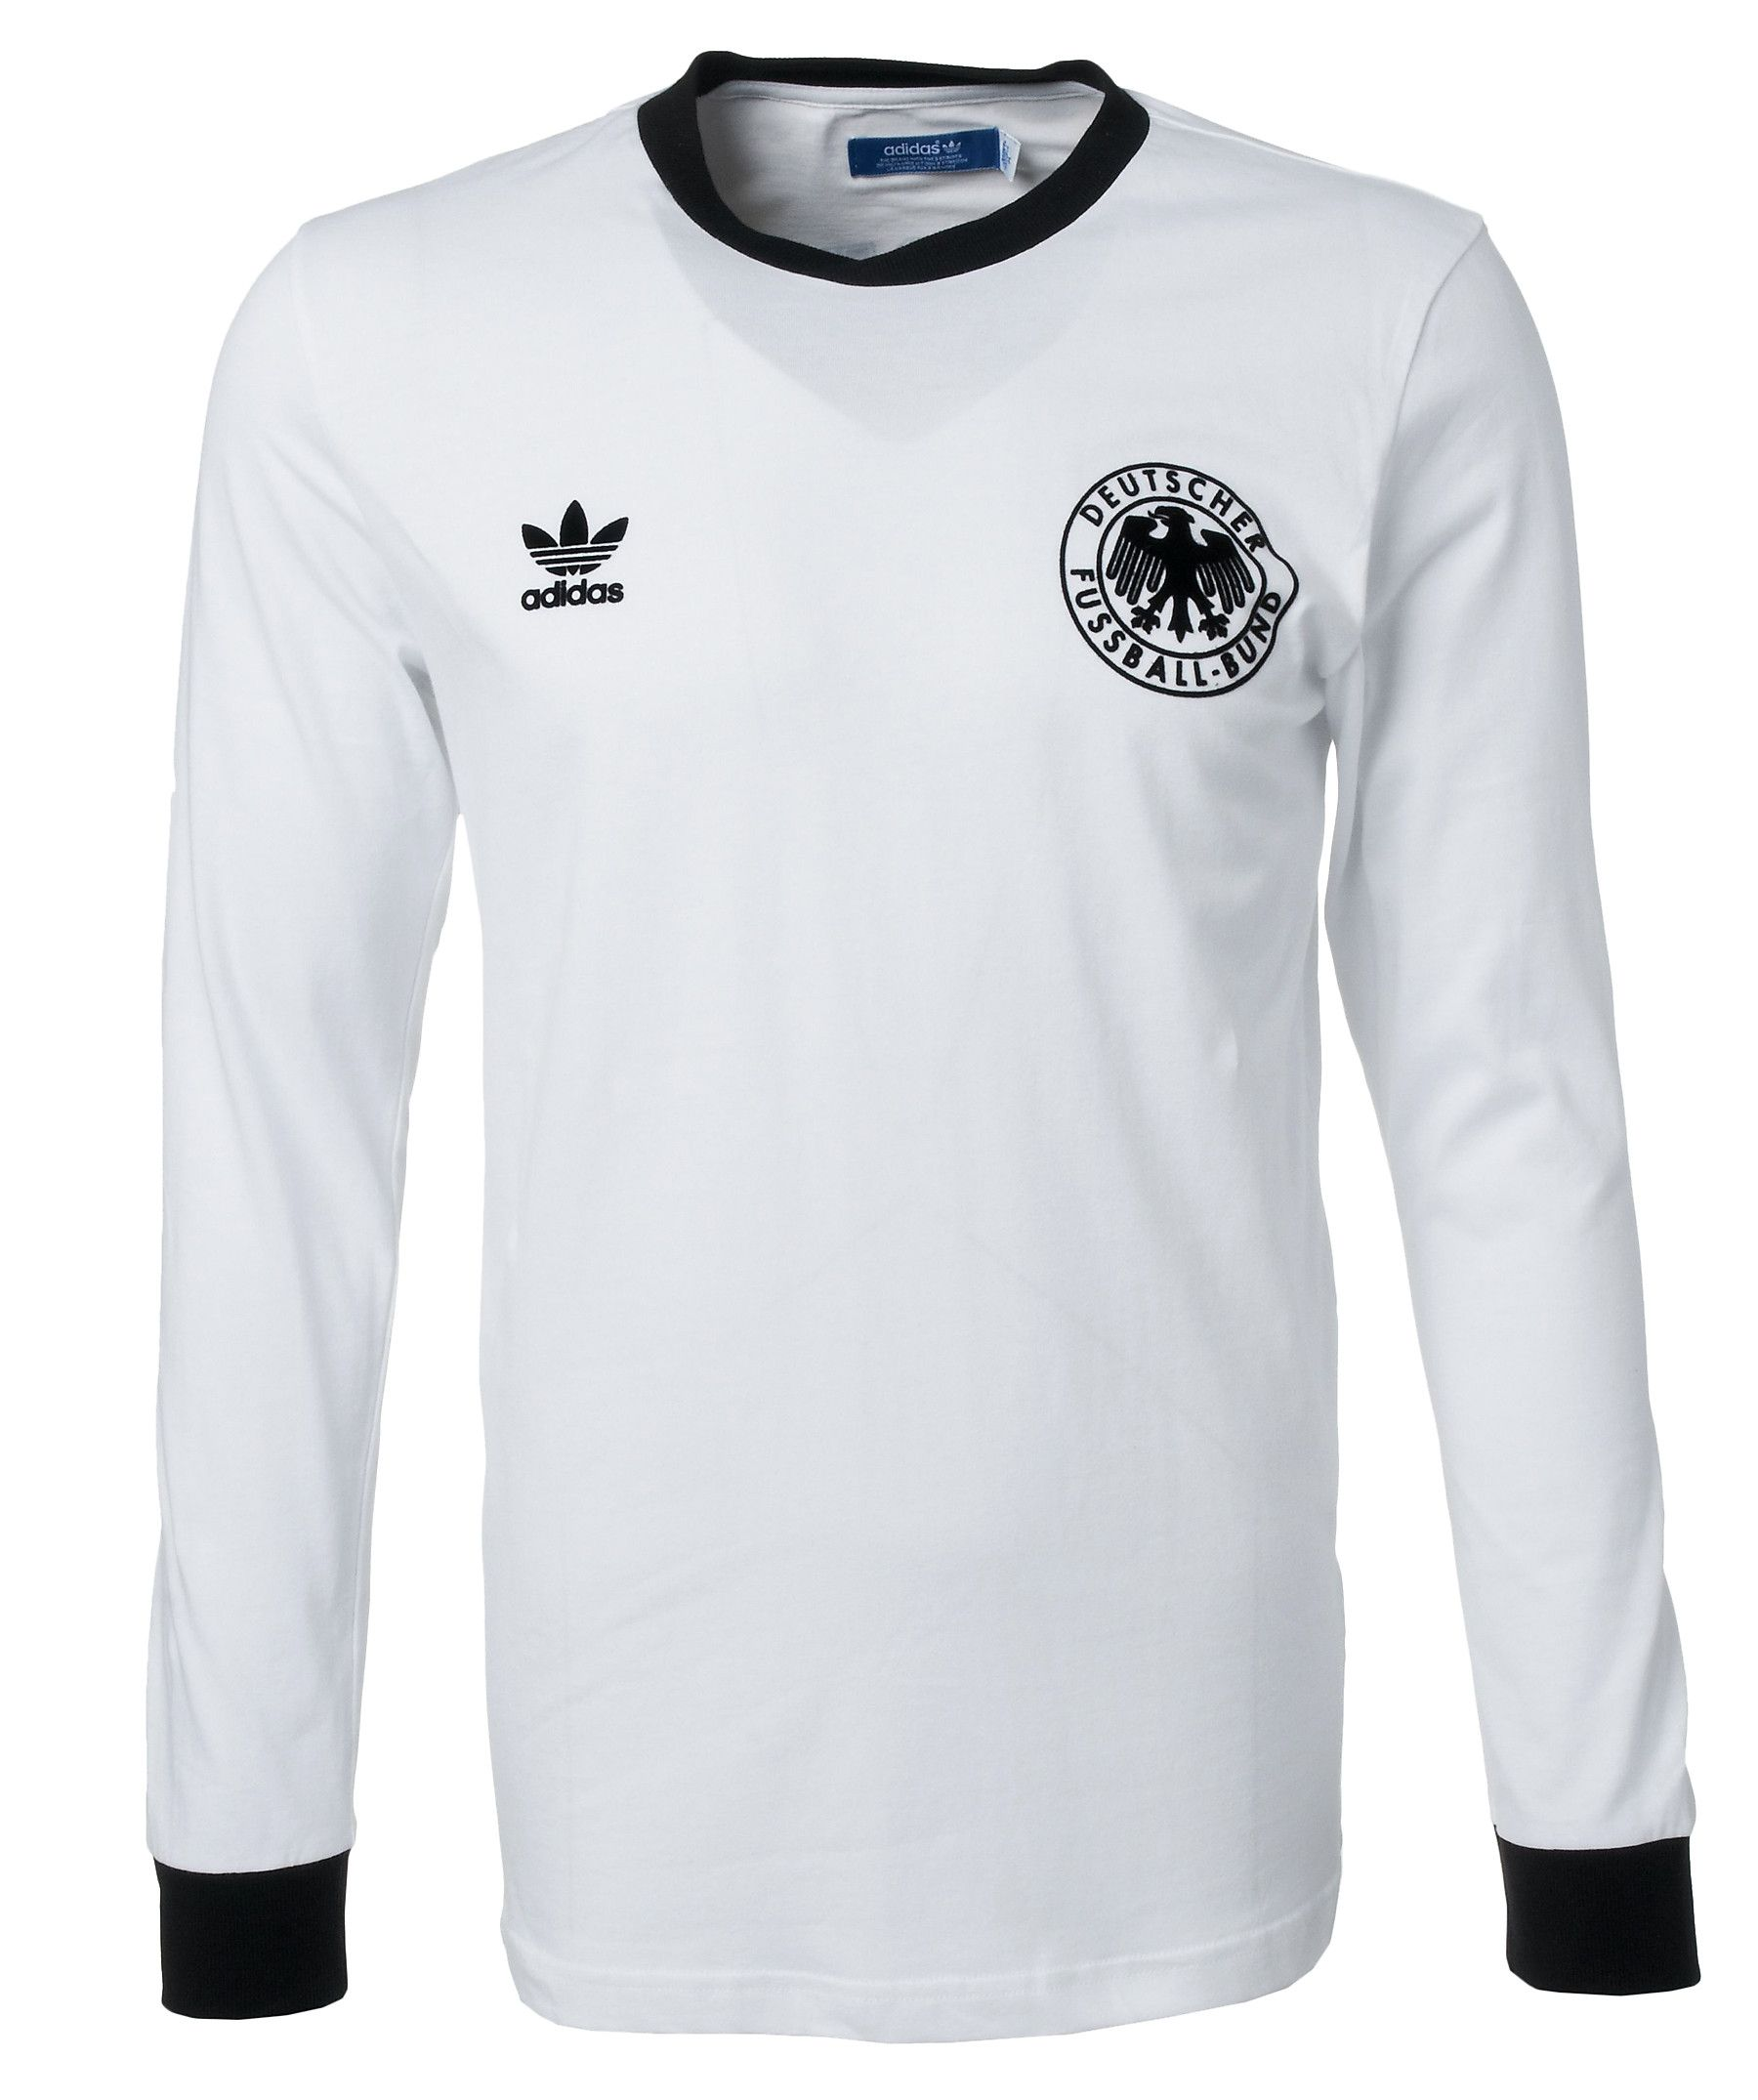 d9280708645 DFB Retro Longsleeve by adidas  soccer  training  game